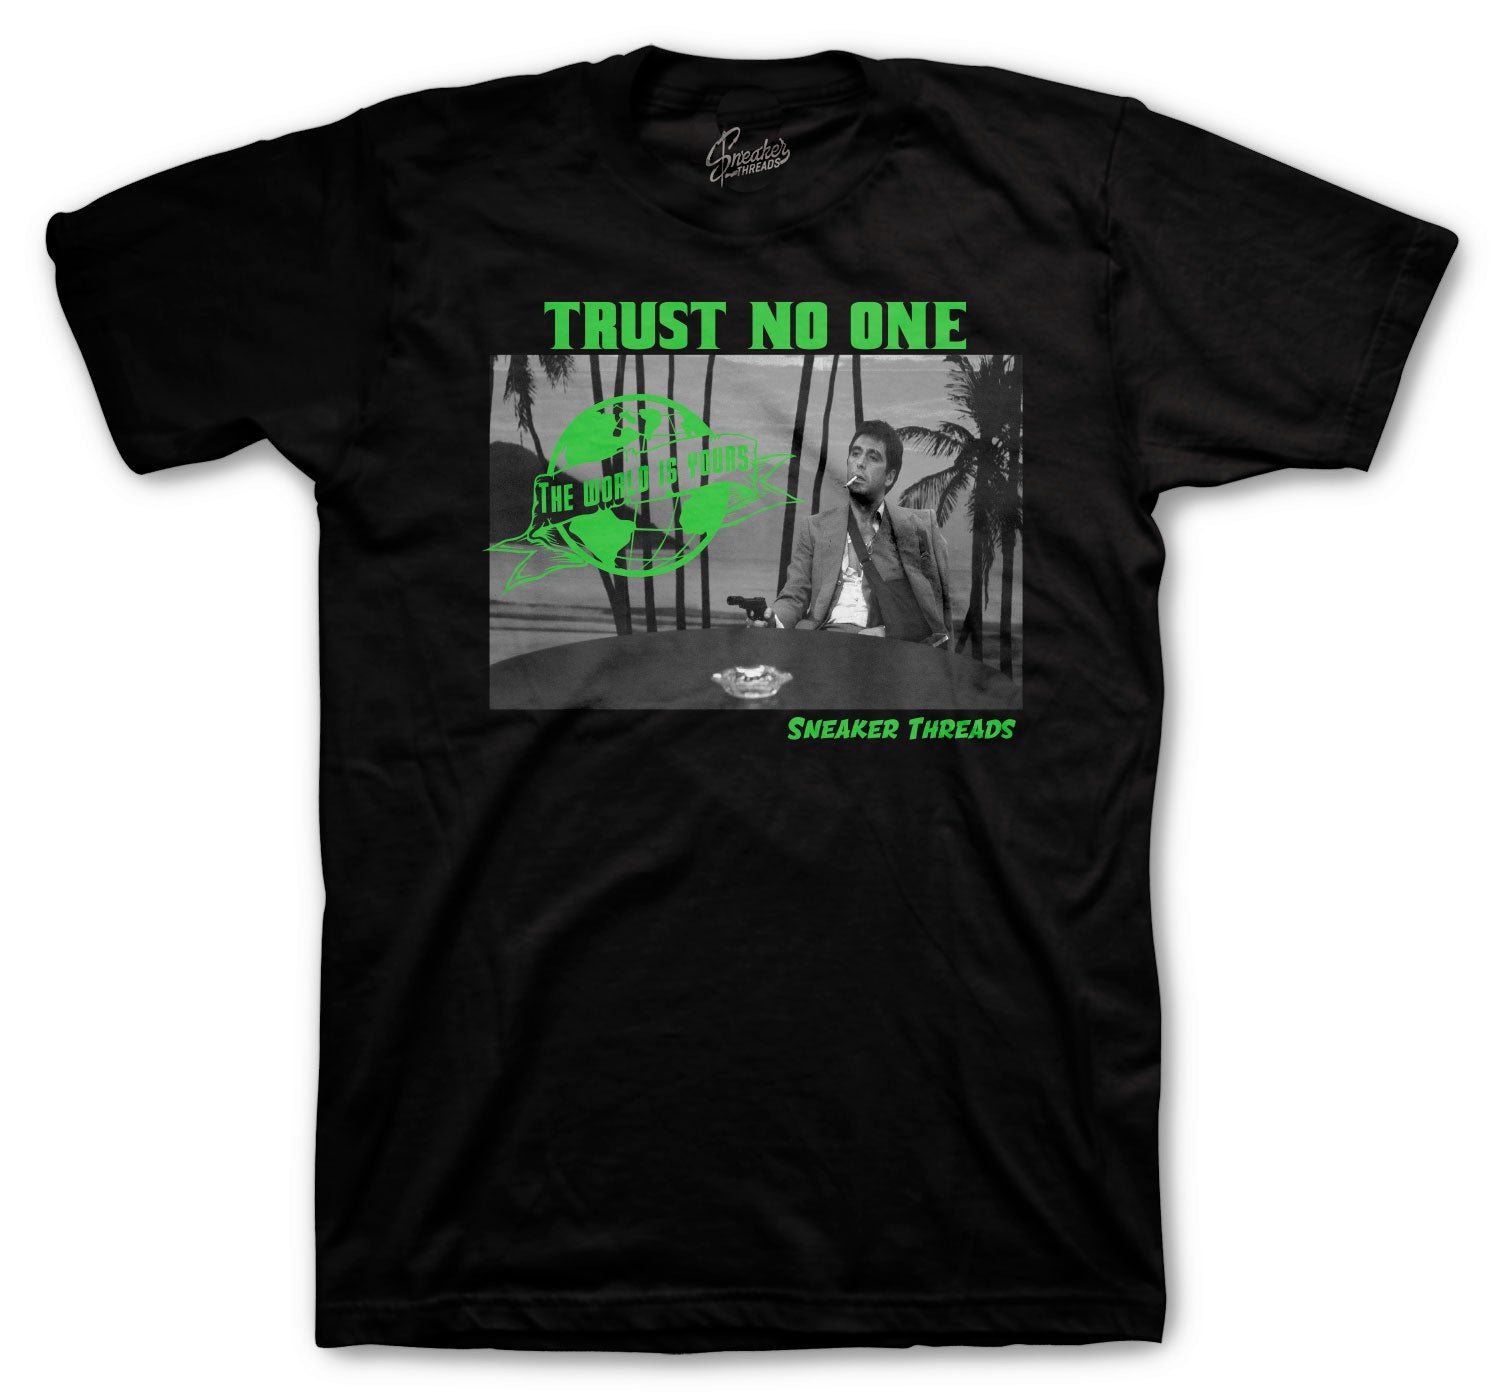 Jordan 13 Lucky Green Tony Knows Shirt